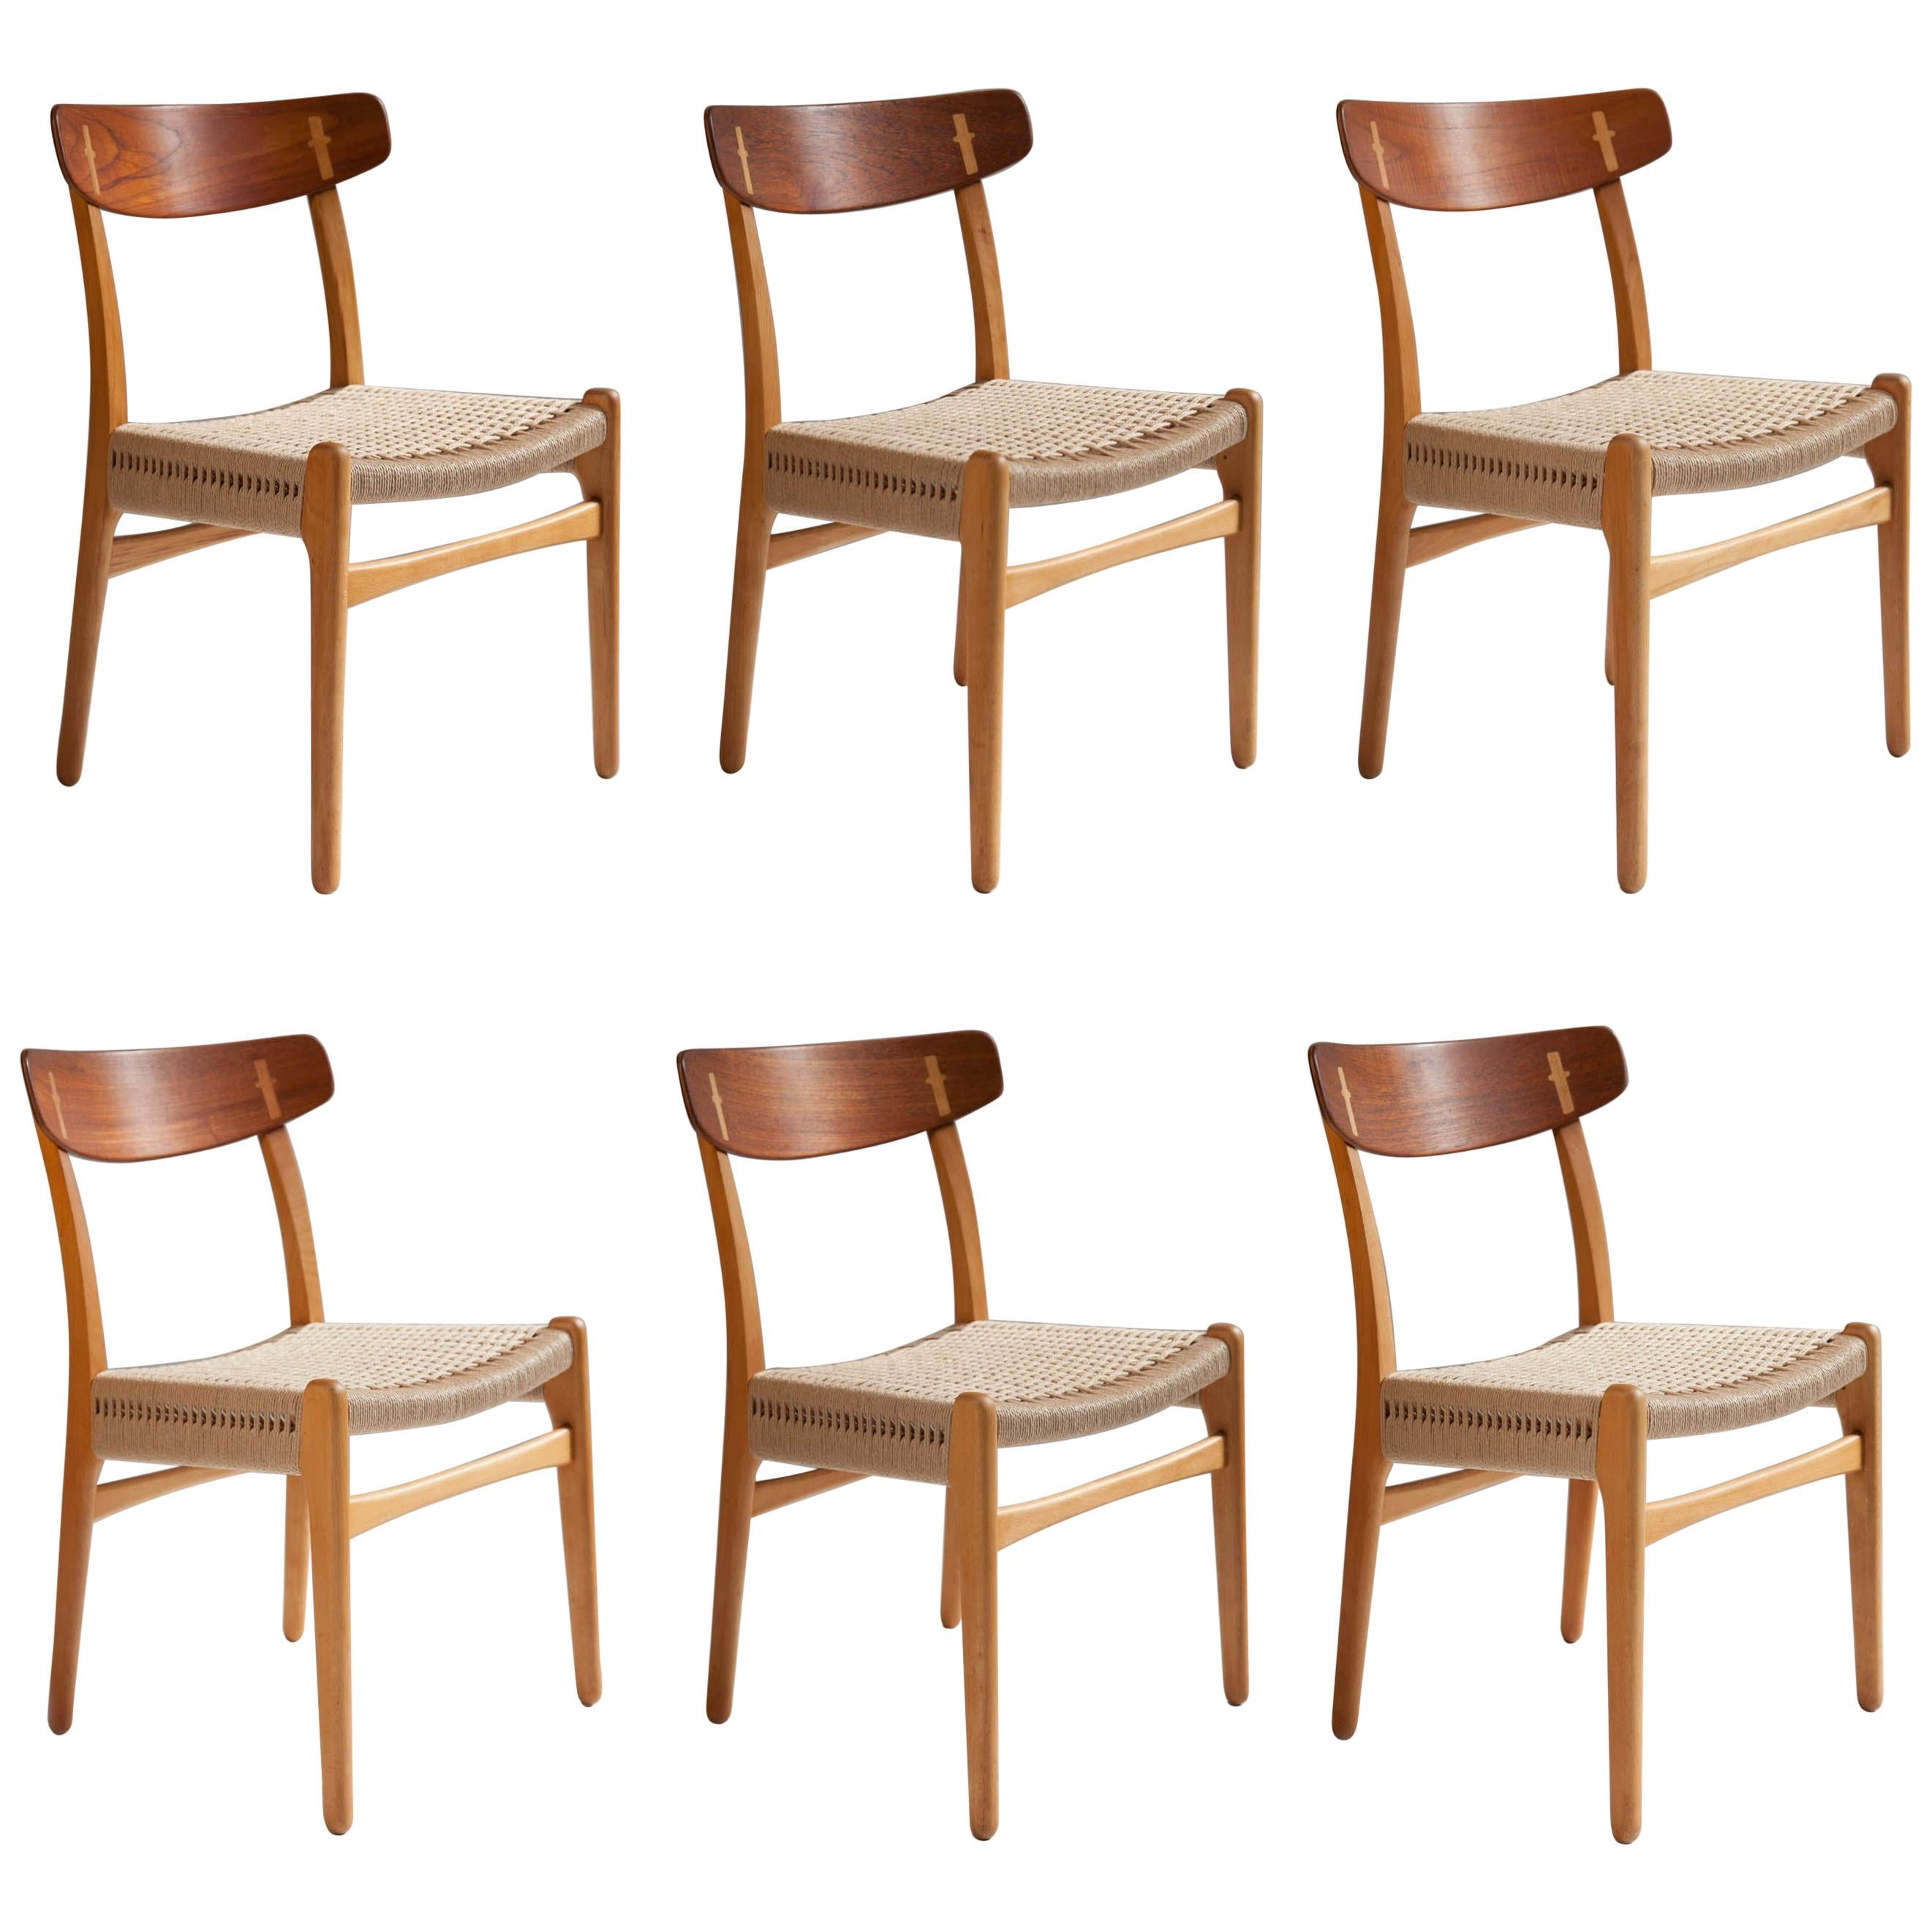 Hans J. Wegner Ch-23 Dining Chairs, Set of 6, Denmark